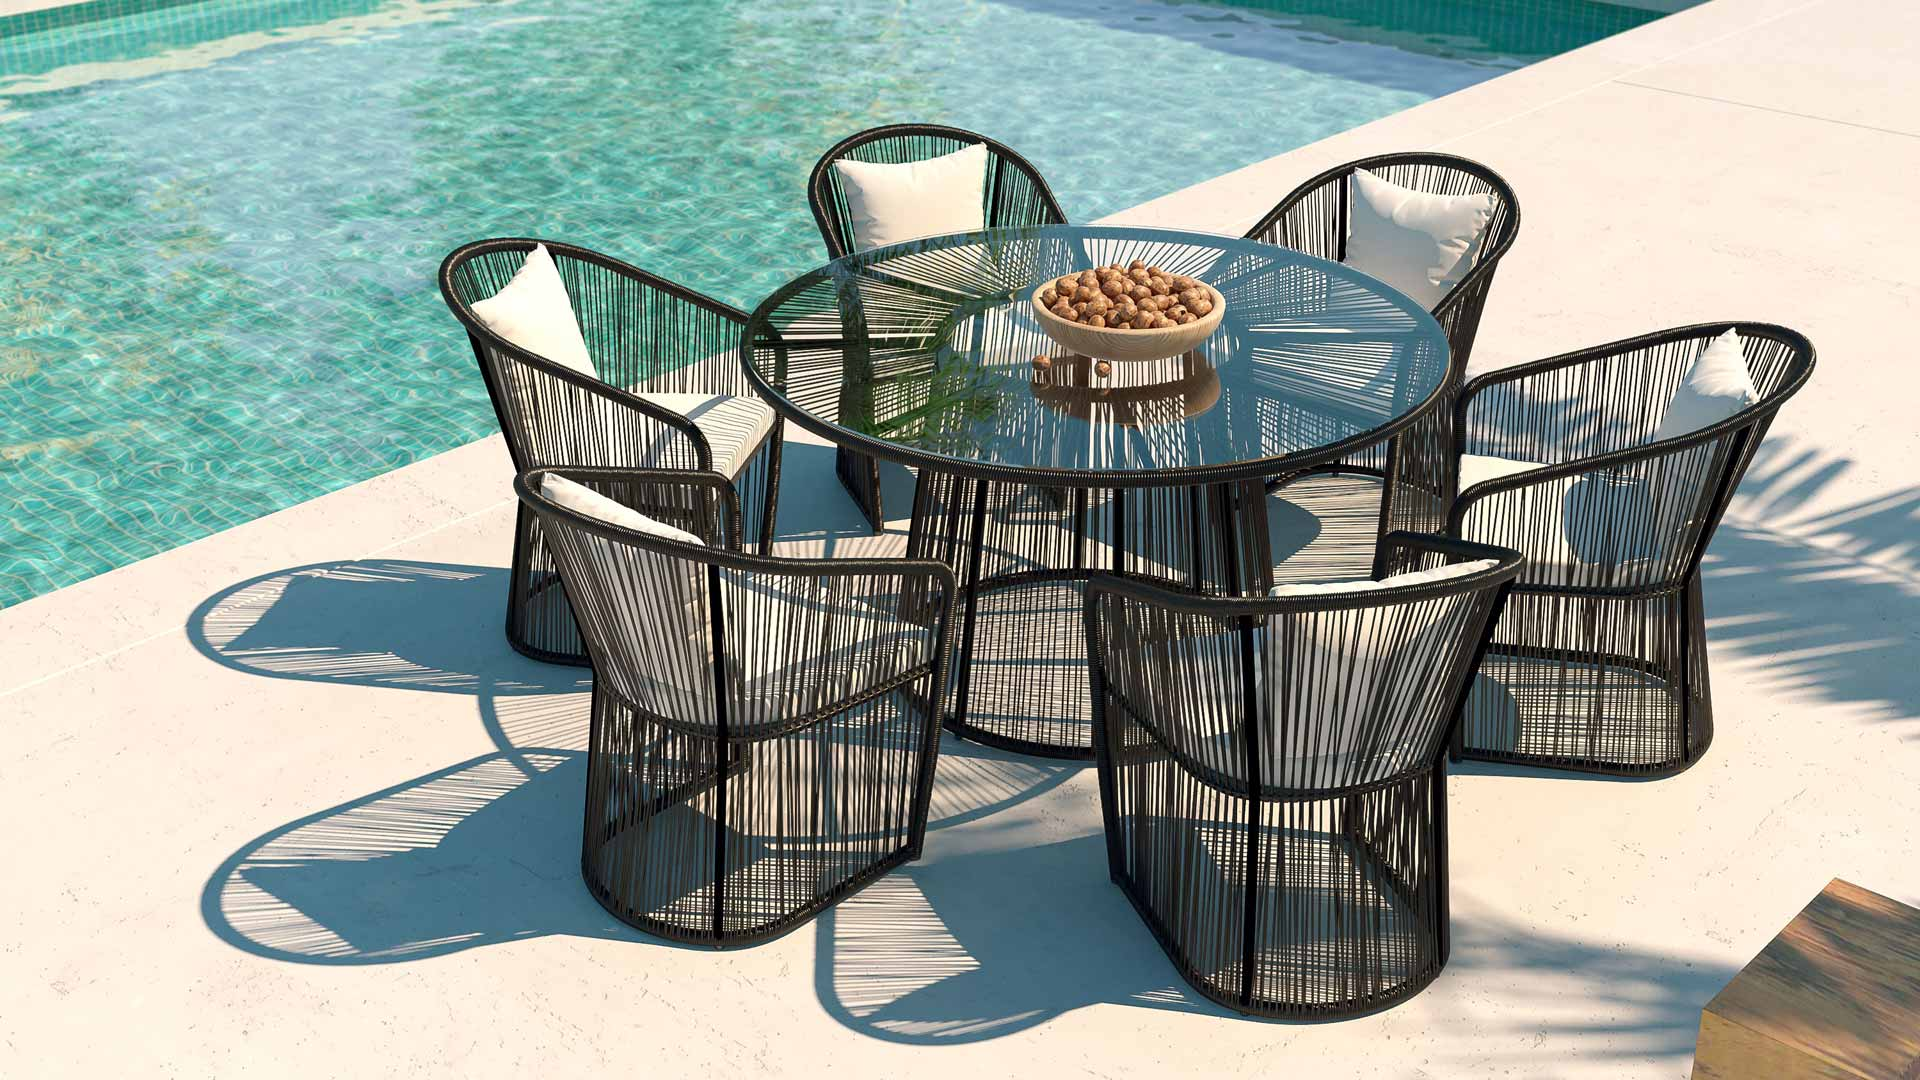 saphir_big Incroyable De Table Et Chaise De Jardin En Resine